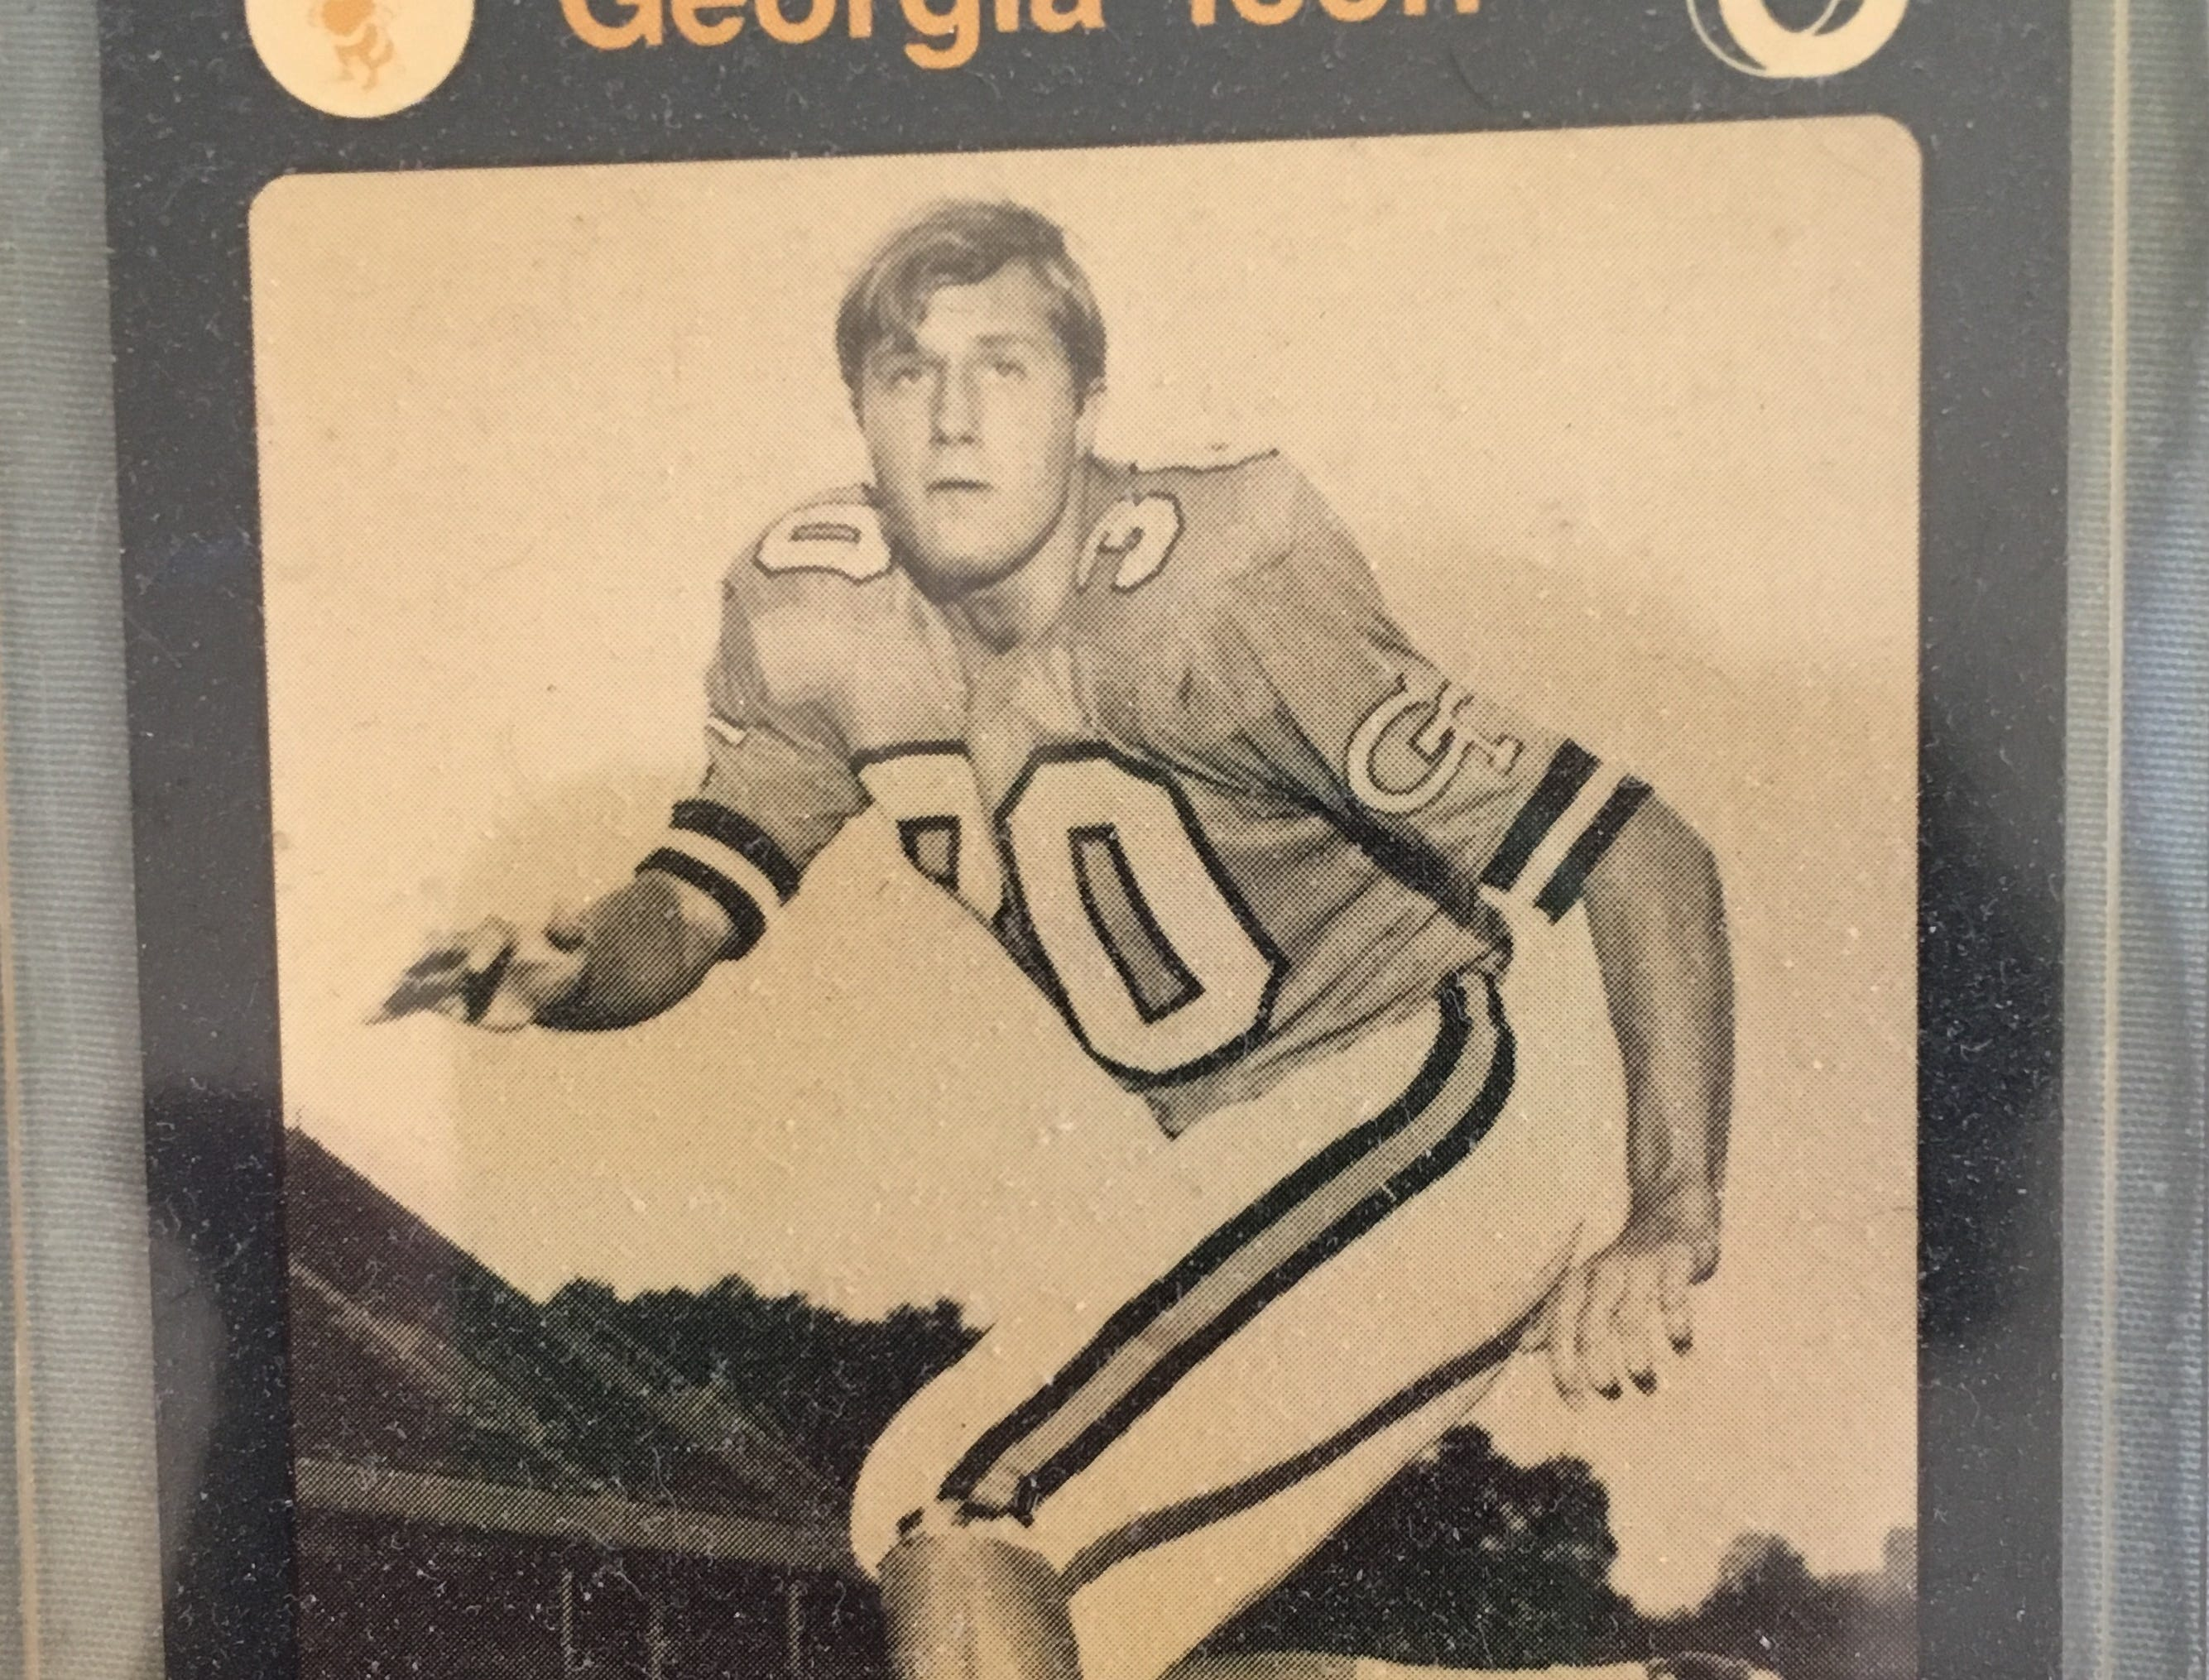 Satellite grad Jeff Ford was drafted by the New York Jets in the ninth round in 1972.